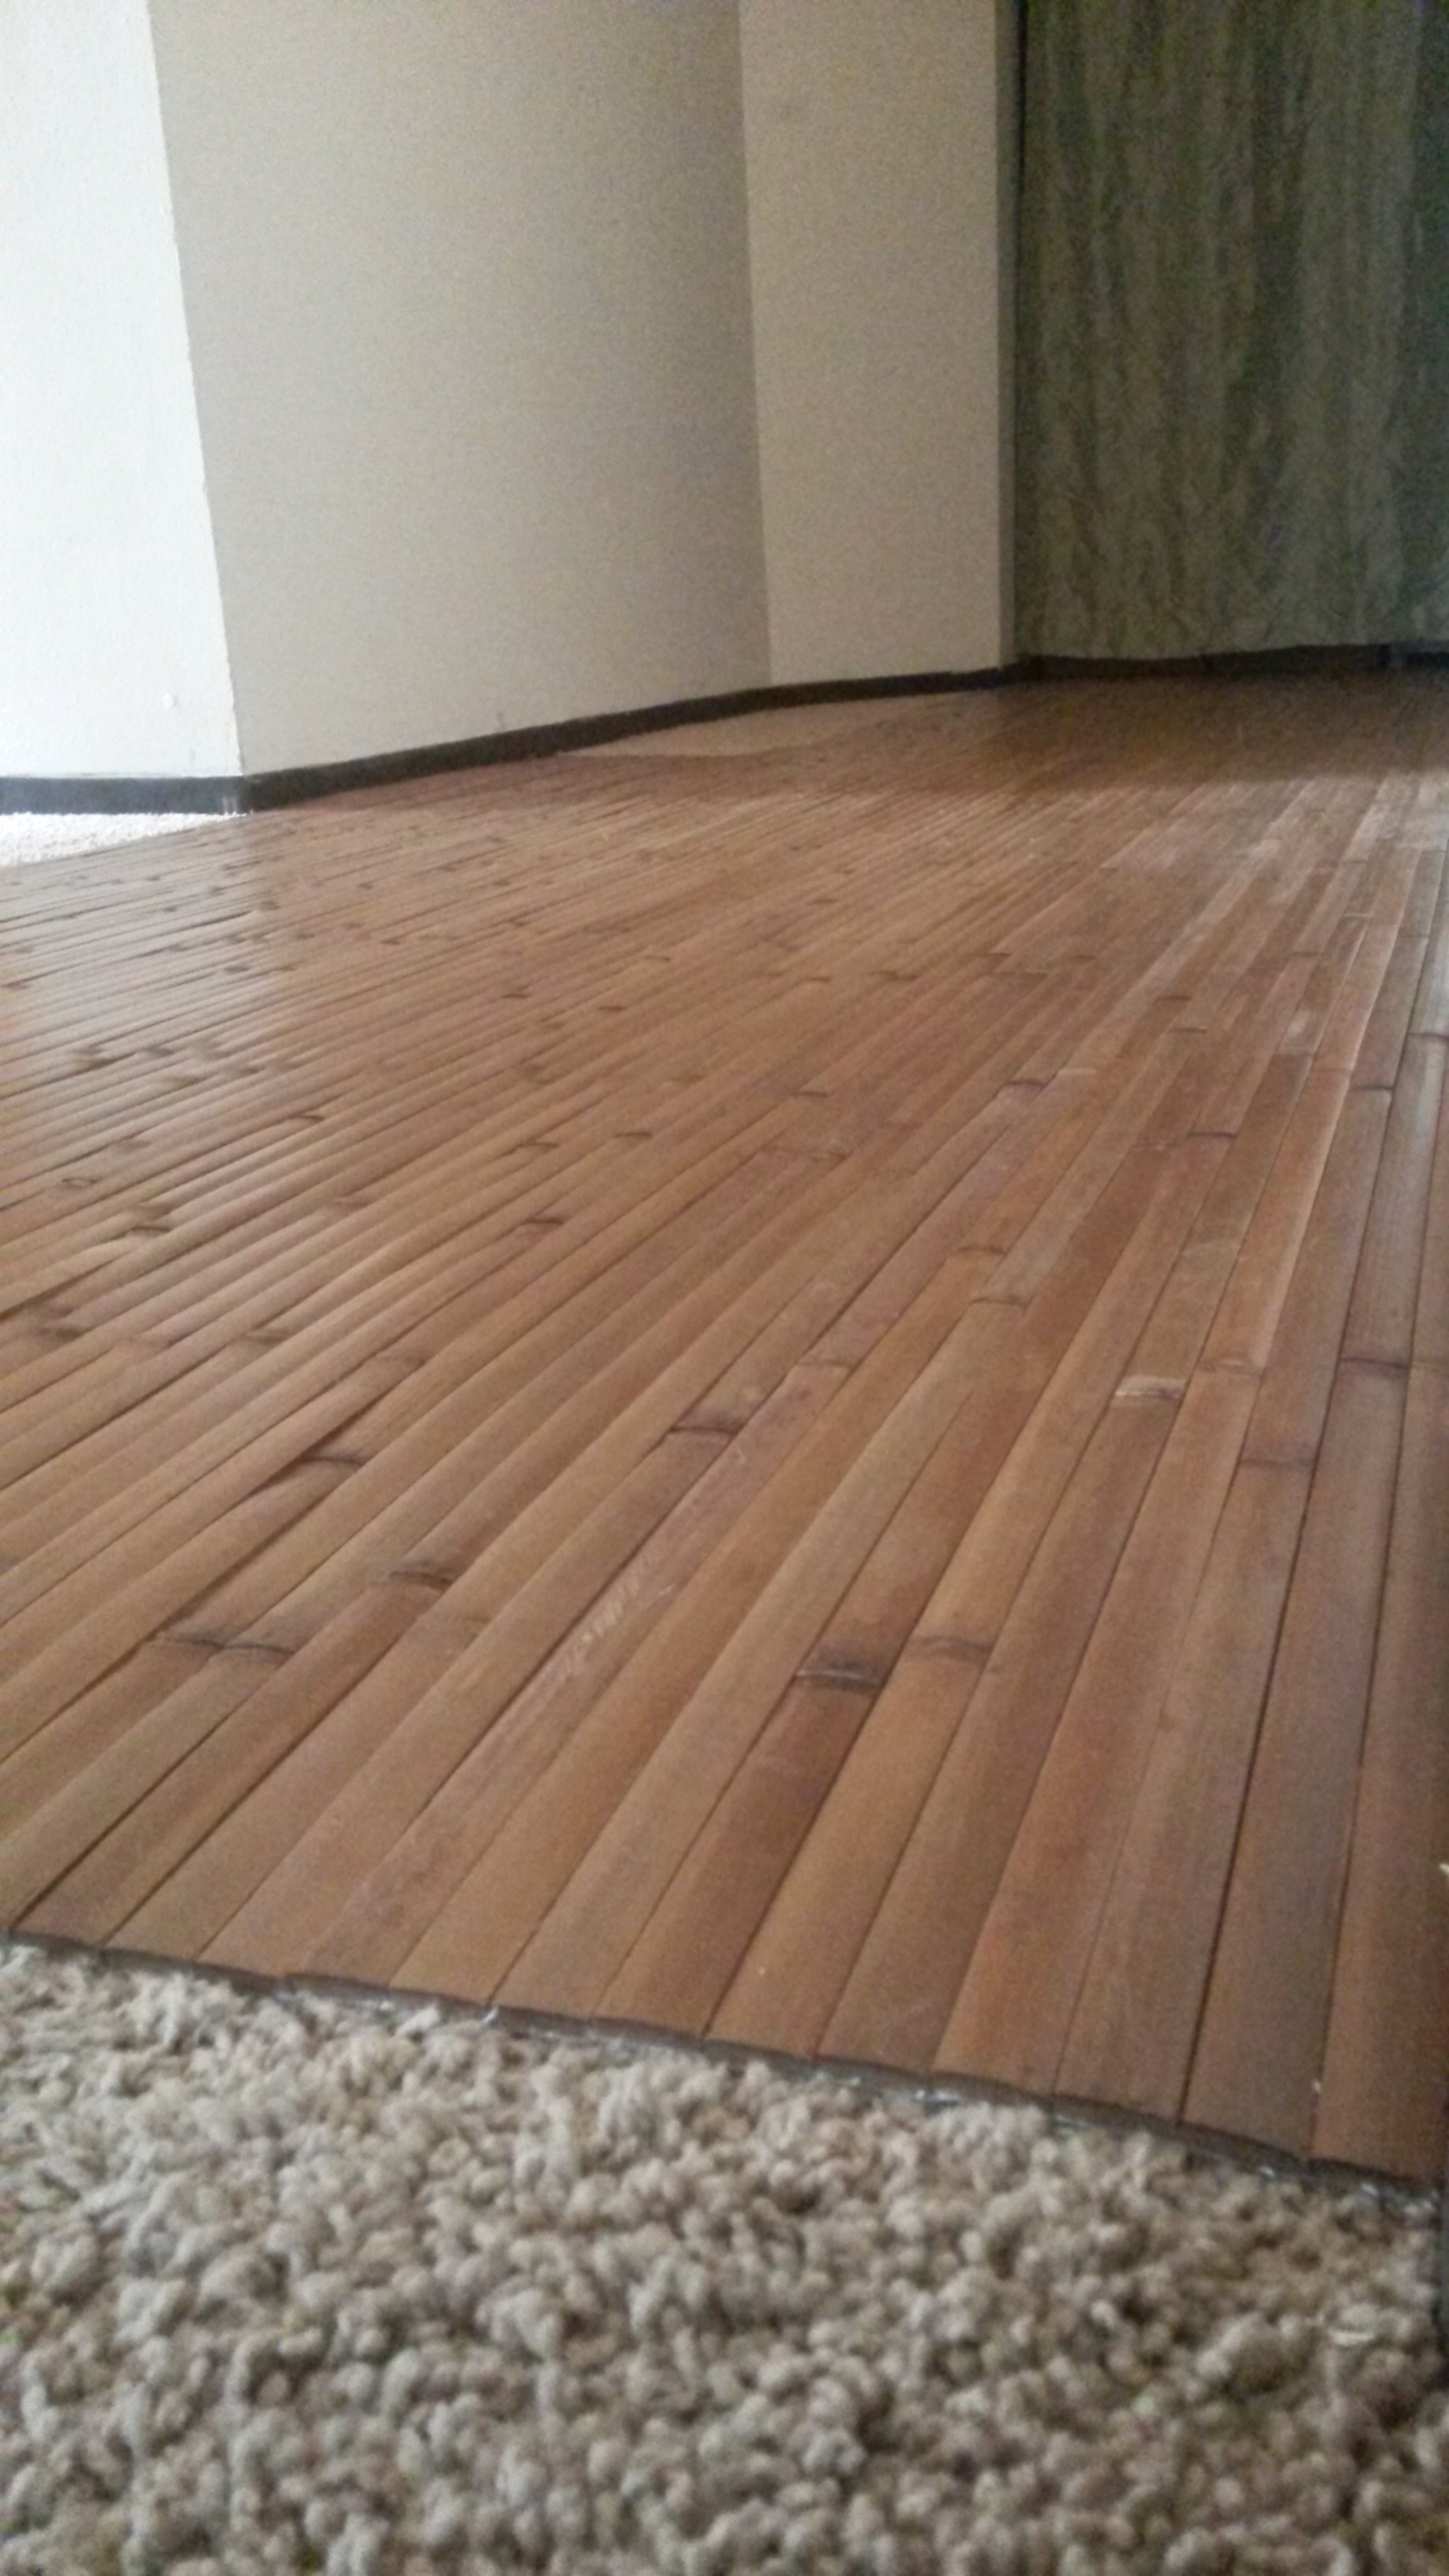 Wood Floor Tiles Over Carpet